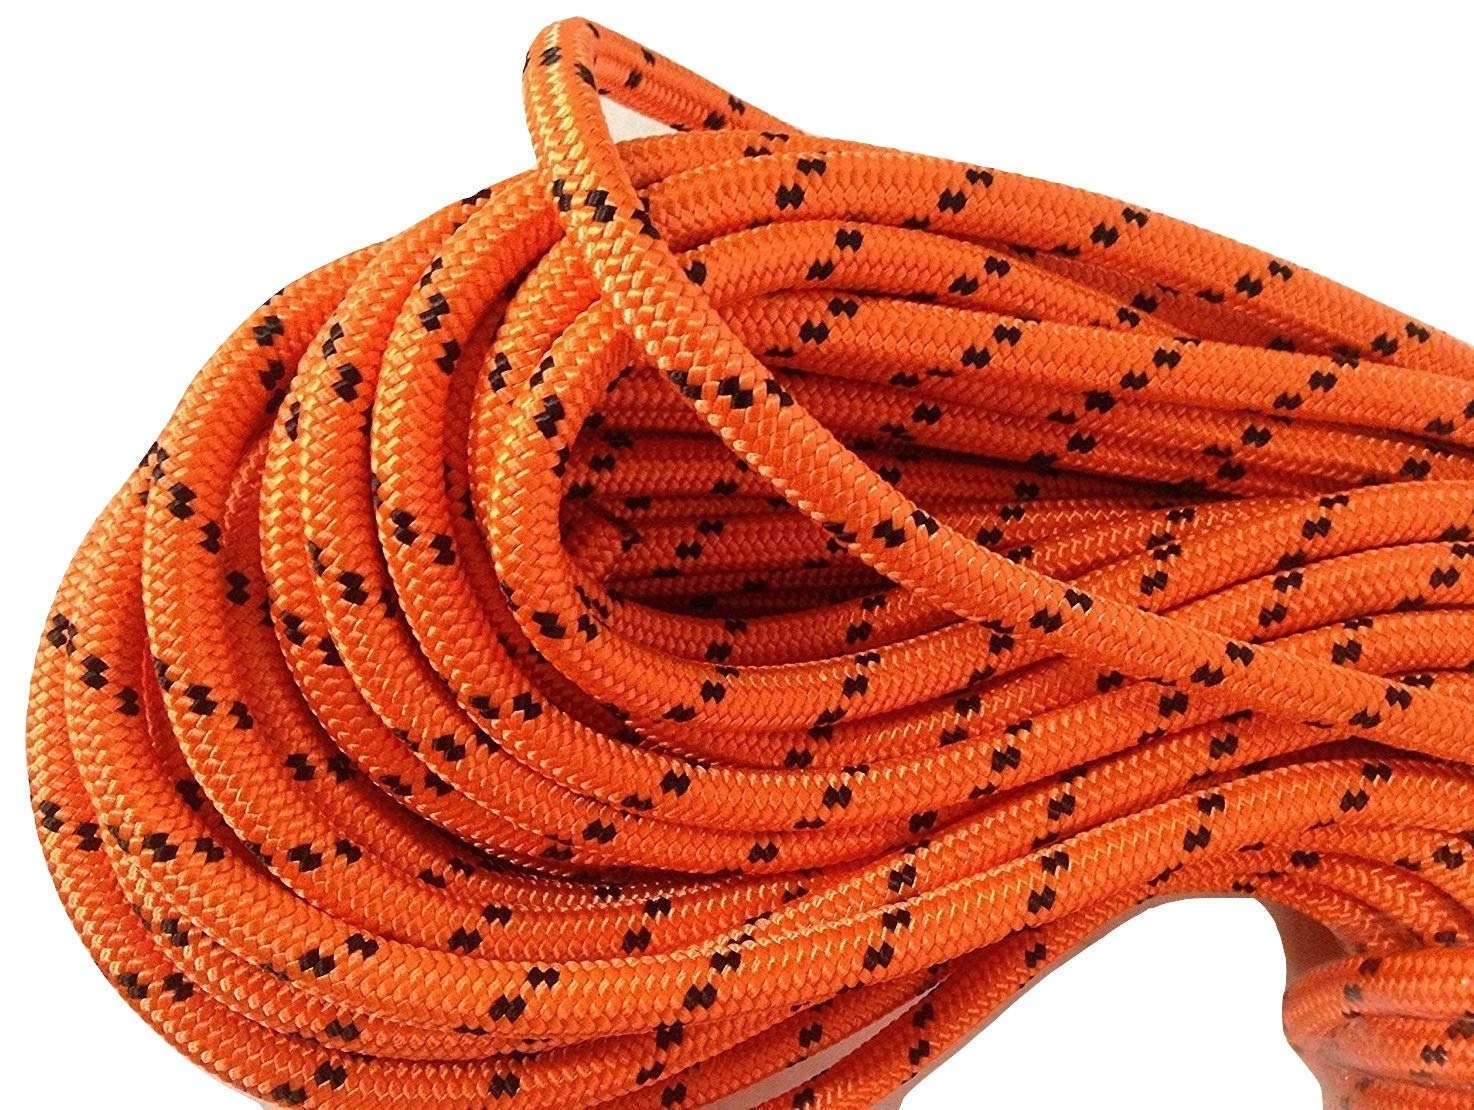 1/2'' X 150' Double Braided Polyester Arborist Rigging Rope, Orange and Black by Blue Ox Rope